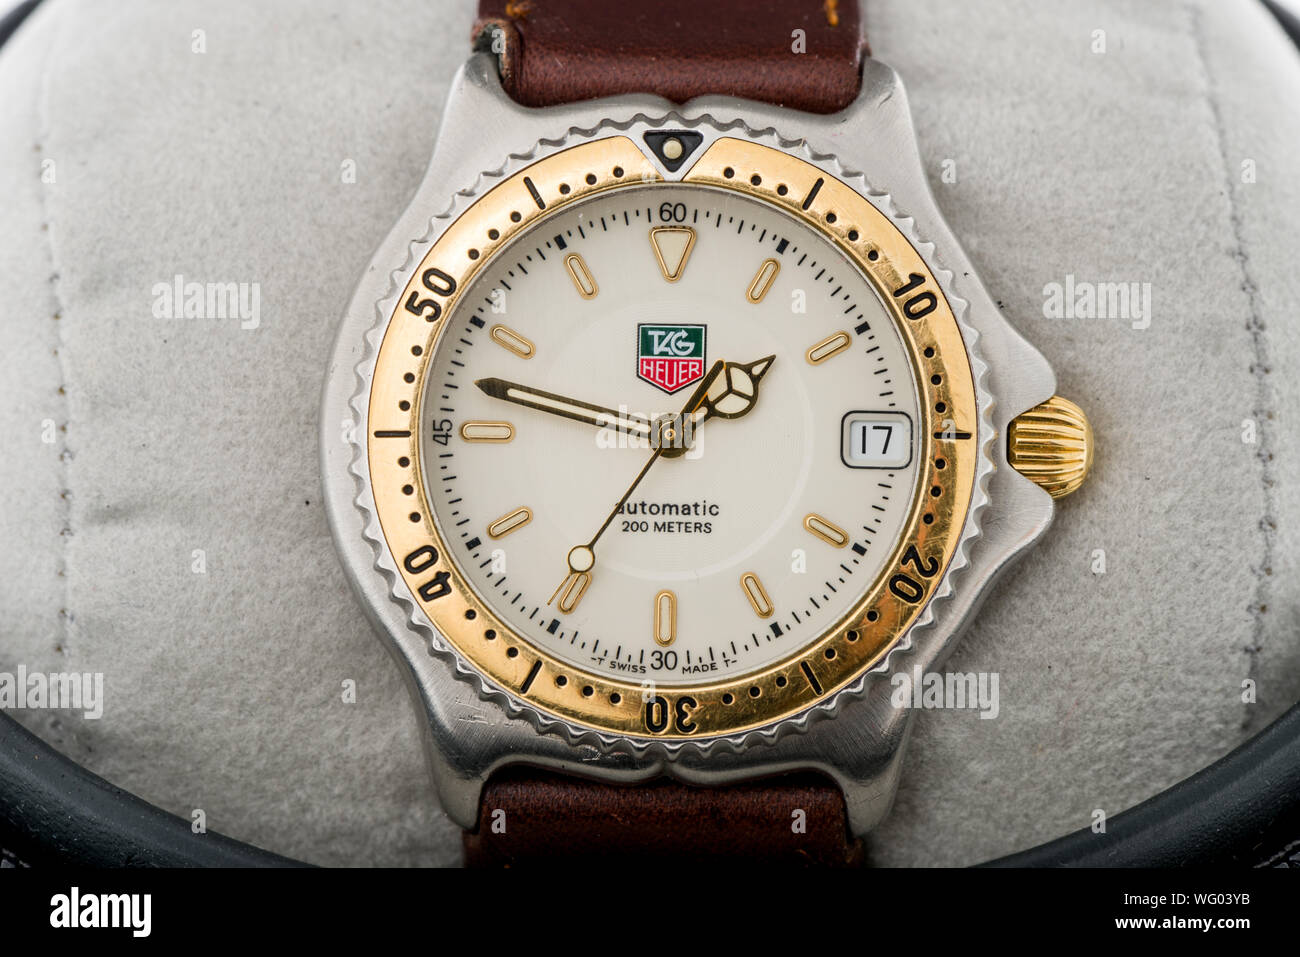 Tag Heuer Stock Photos & Tag Heuer Stock Images - Alamy